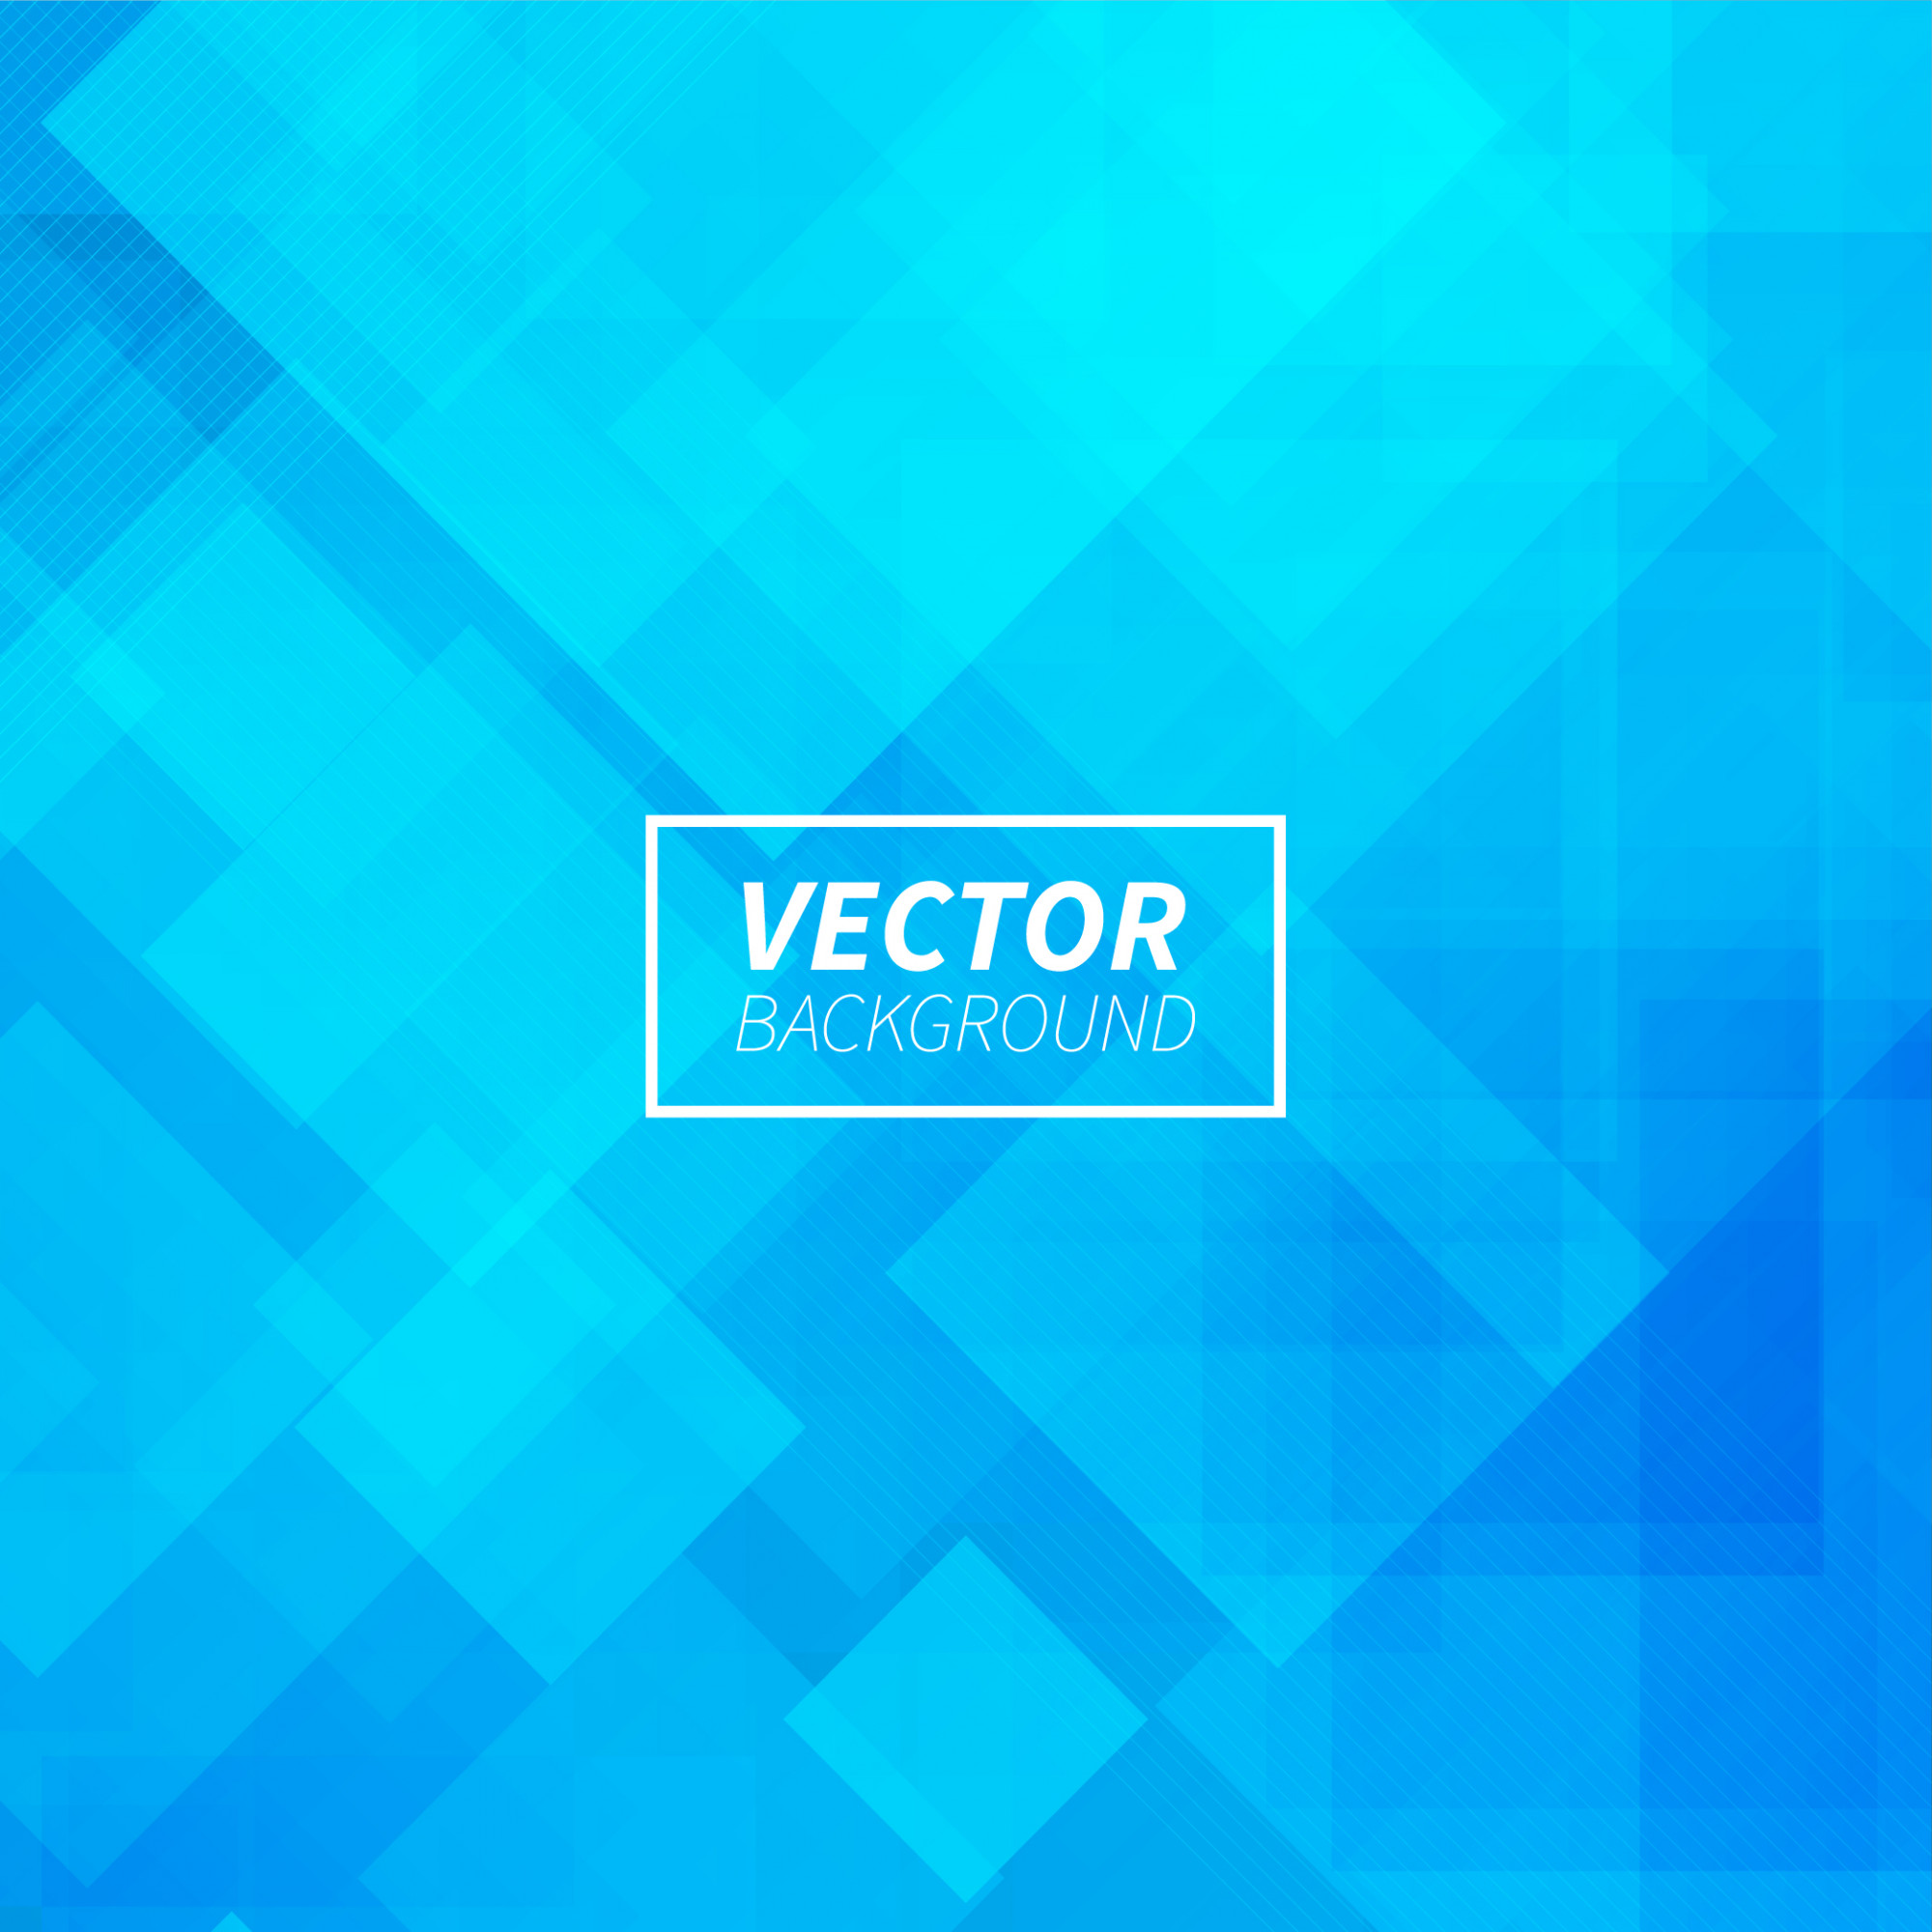 Abstract blue geometric shapes background